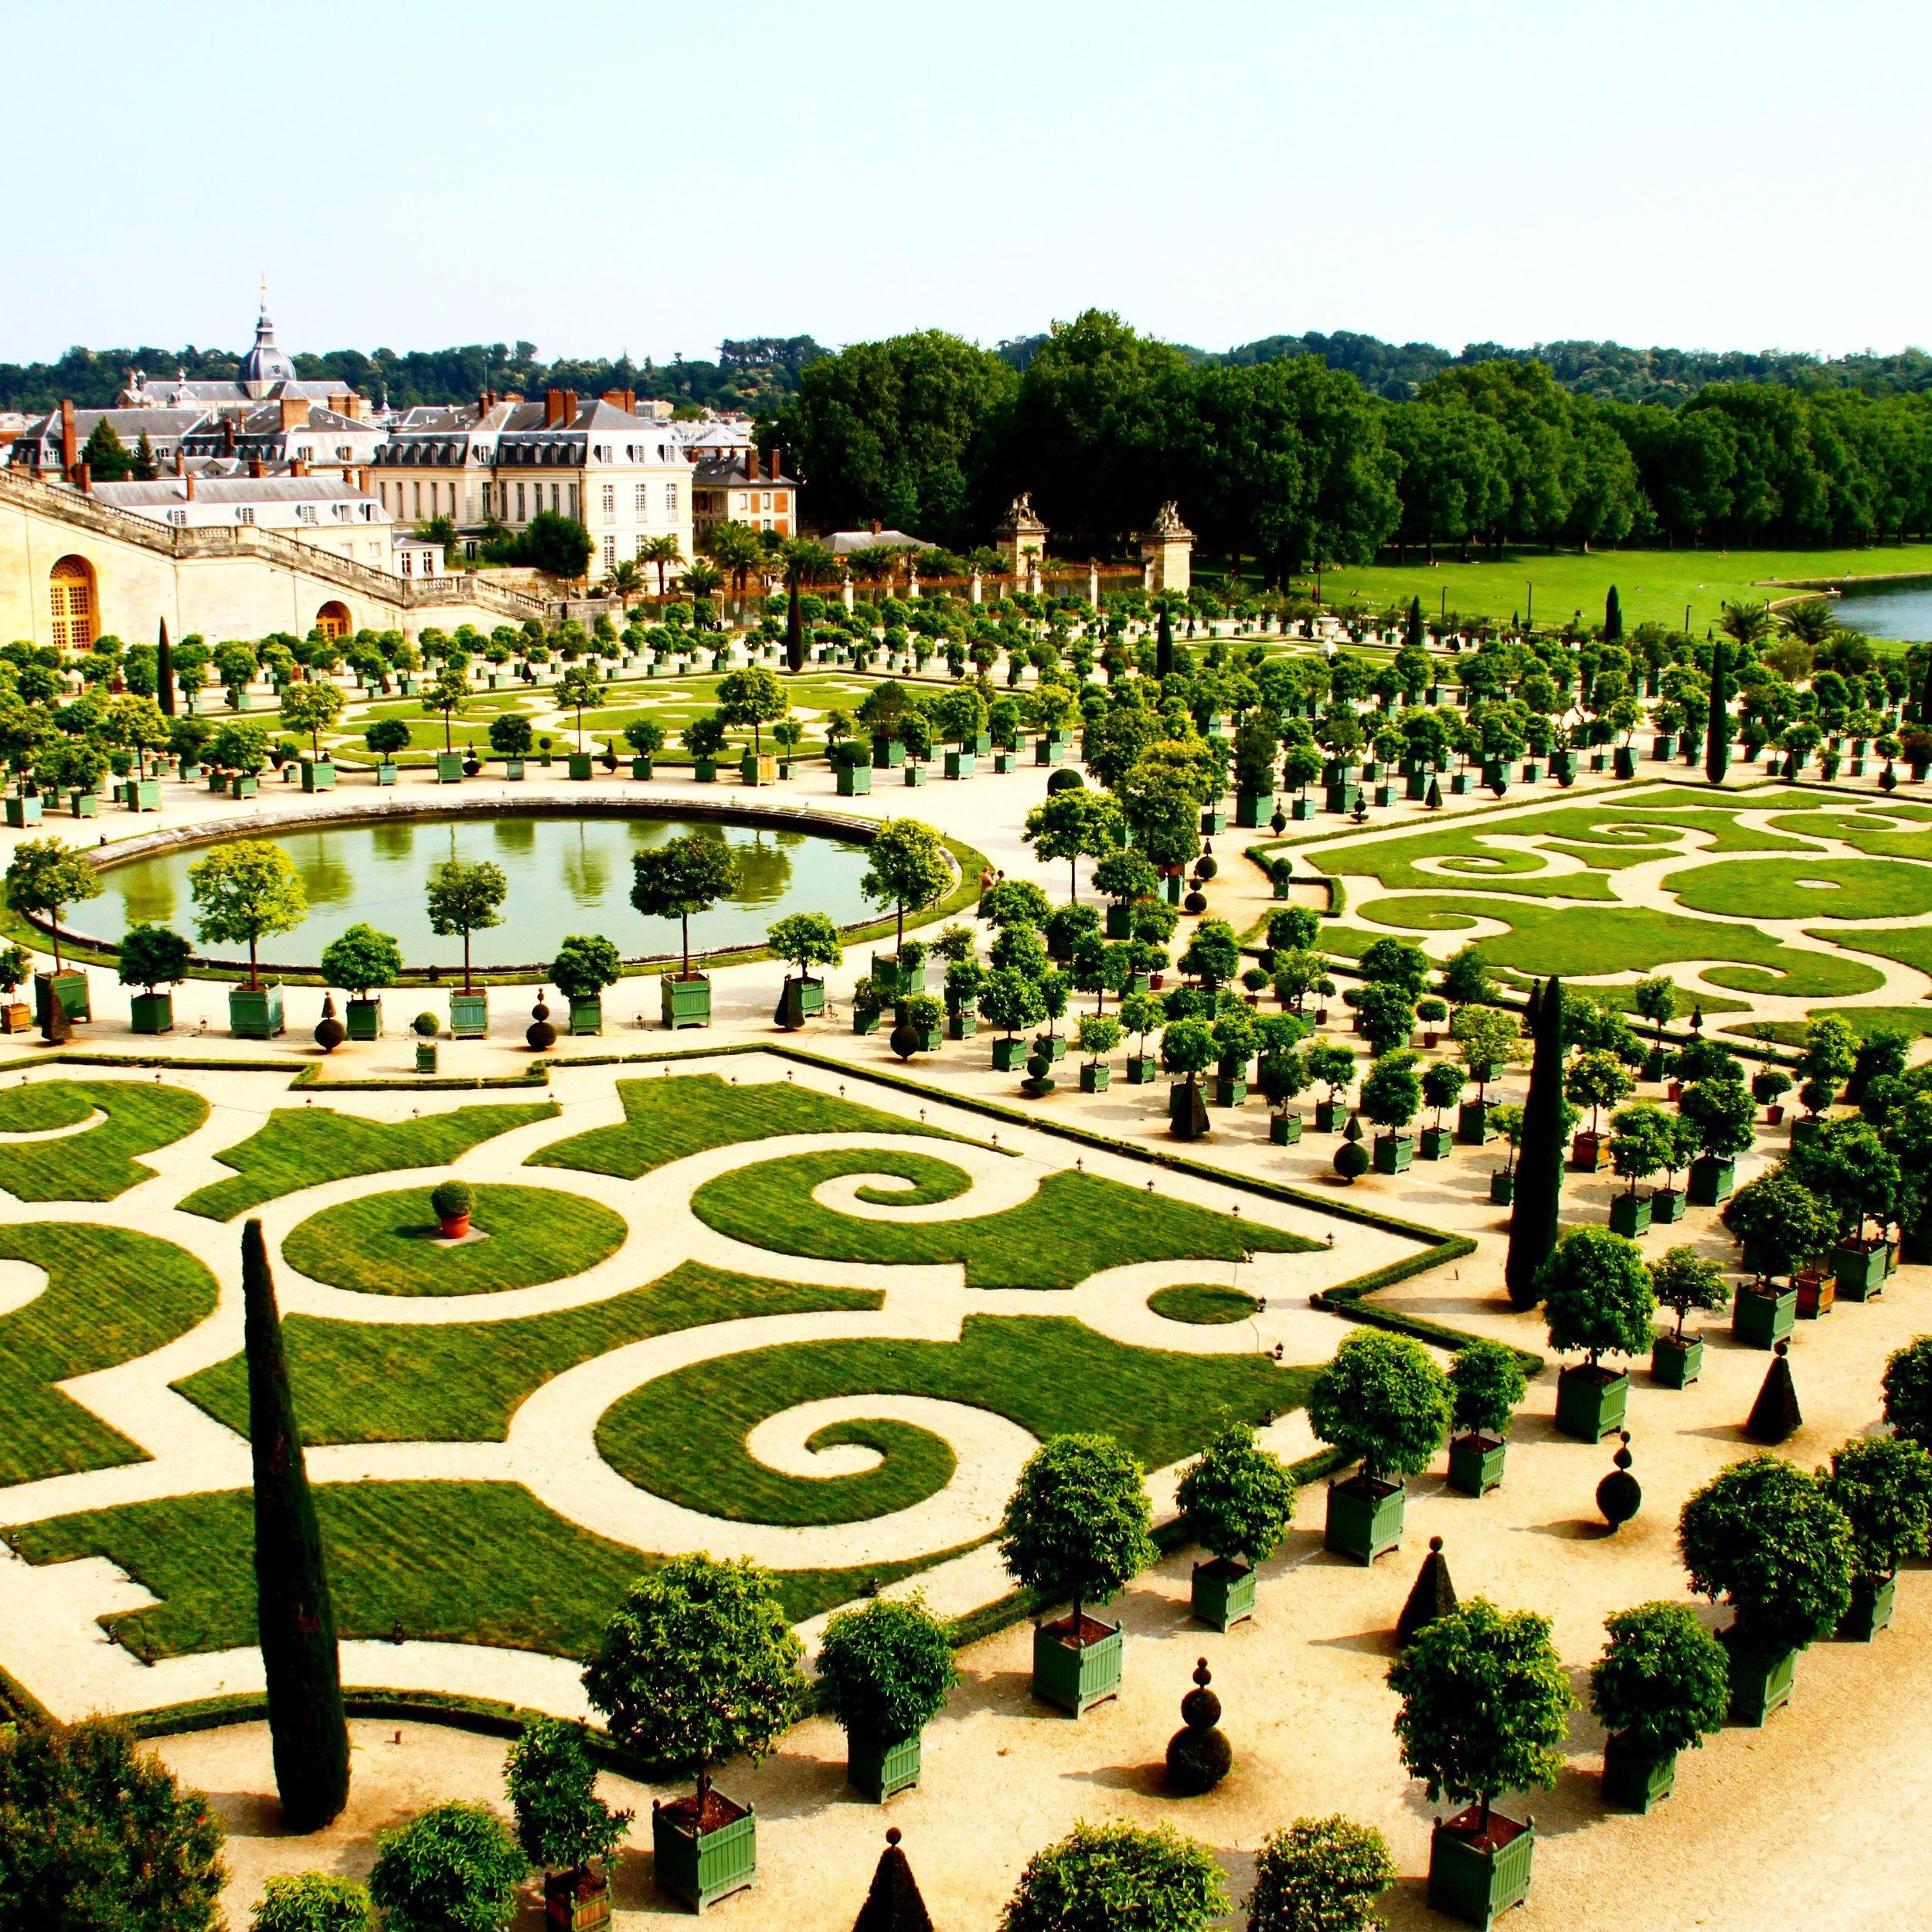 I could spend hours at the Palace of Versailles. I'm still in awe that people actually lived there!